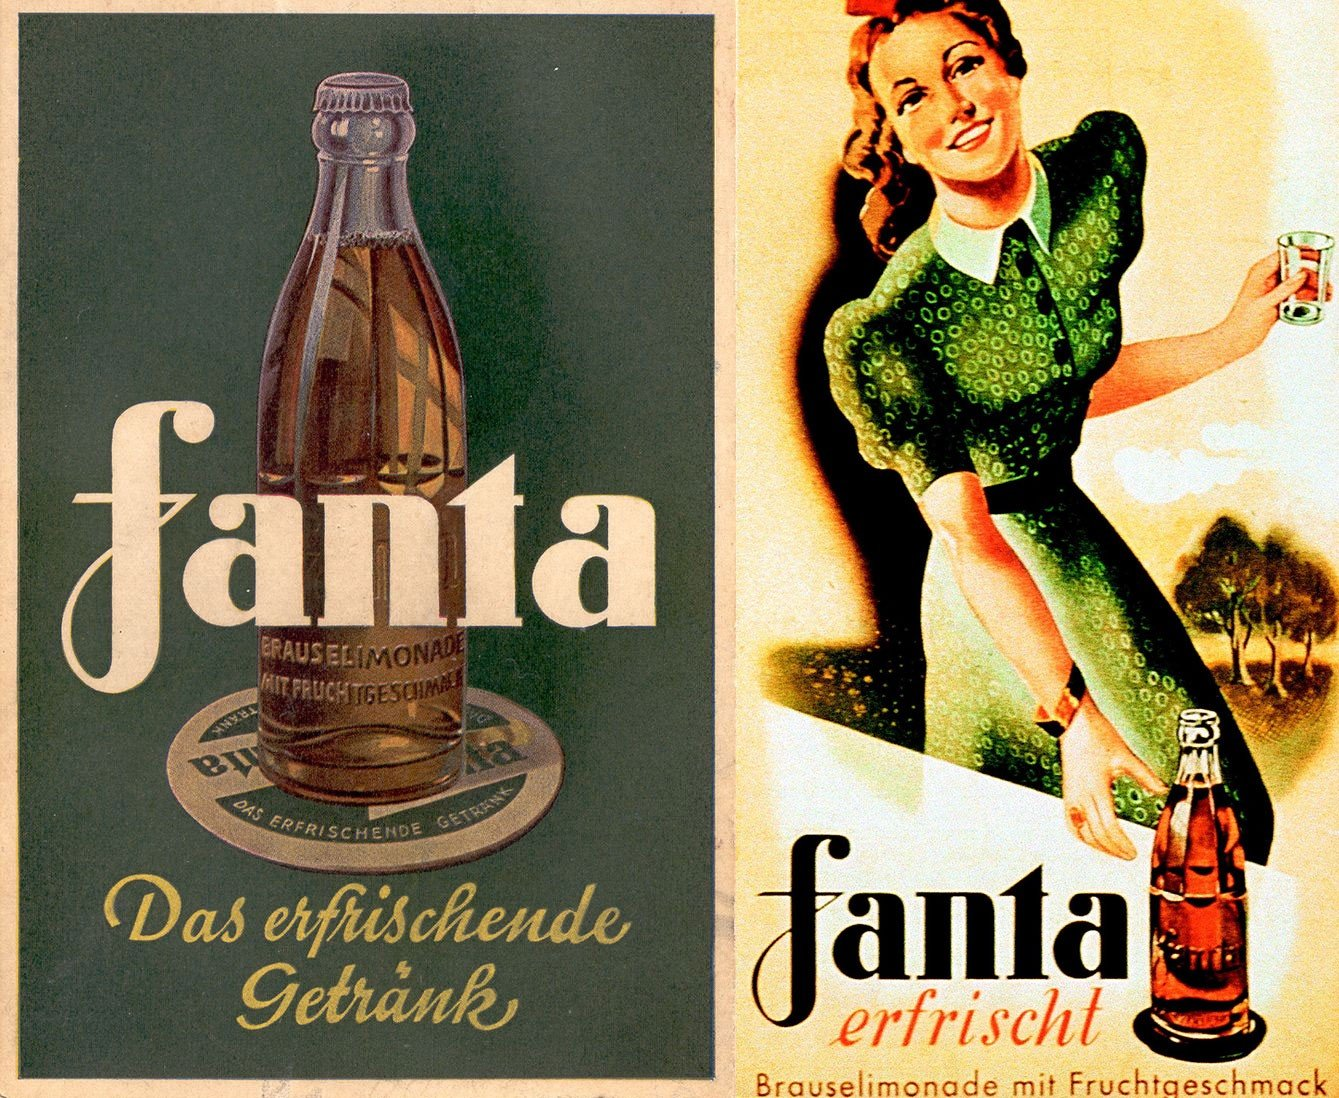 World War II Stories: How Fanta Was Created for Nazi Germany